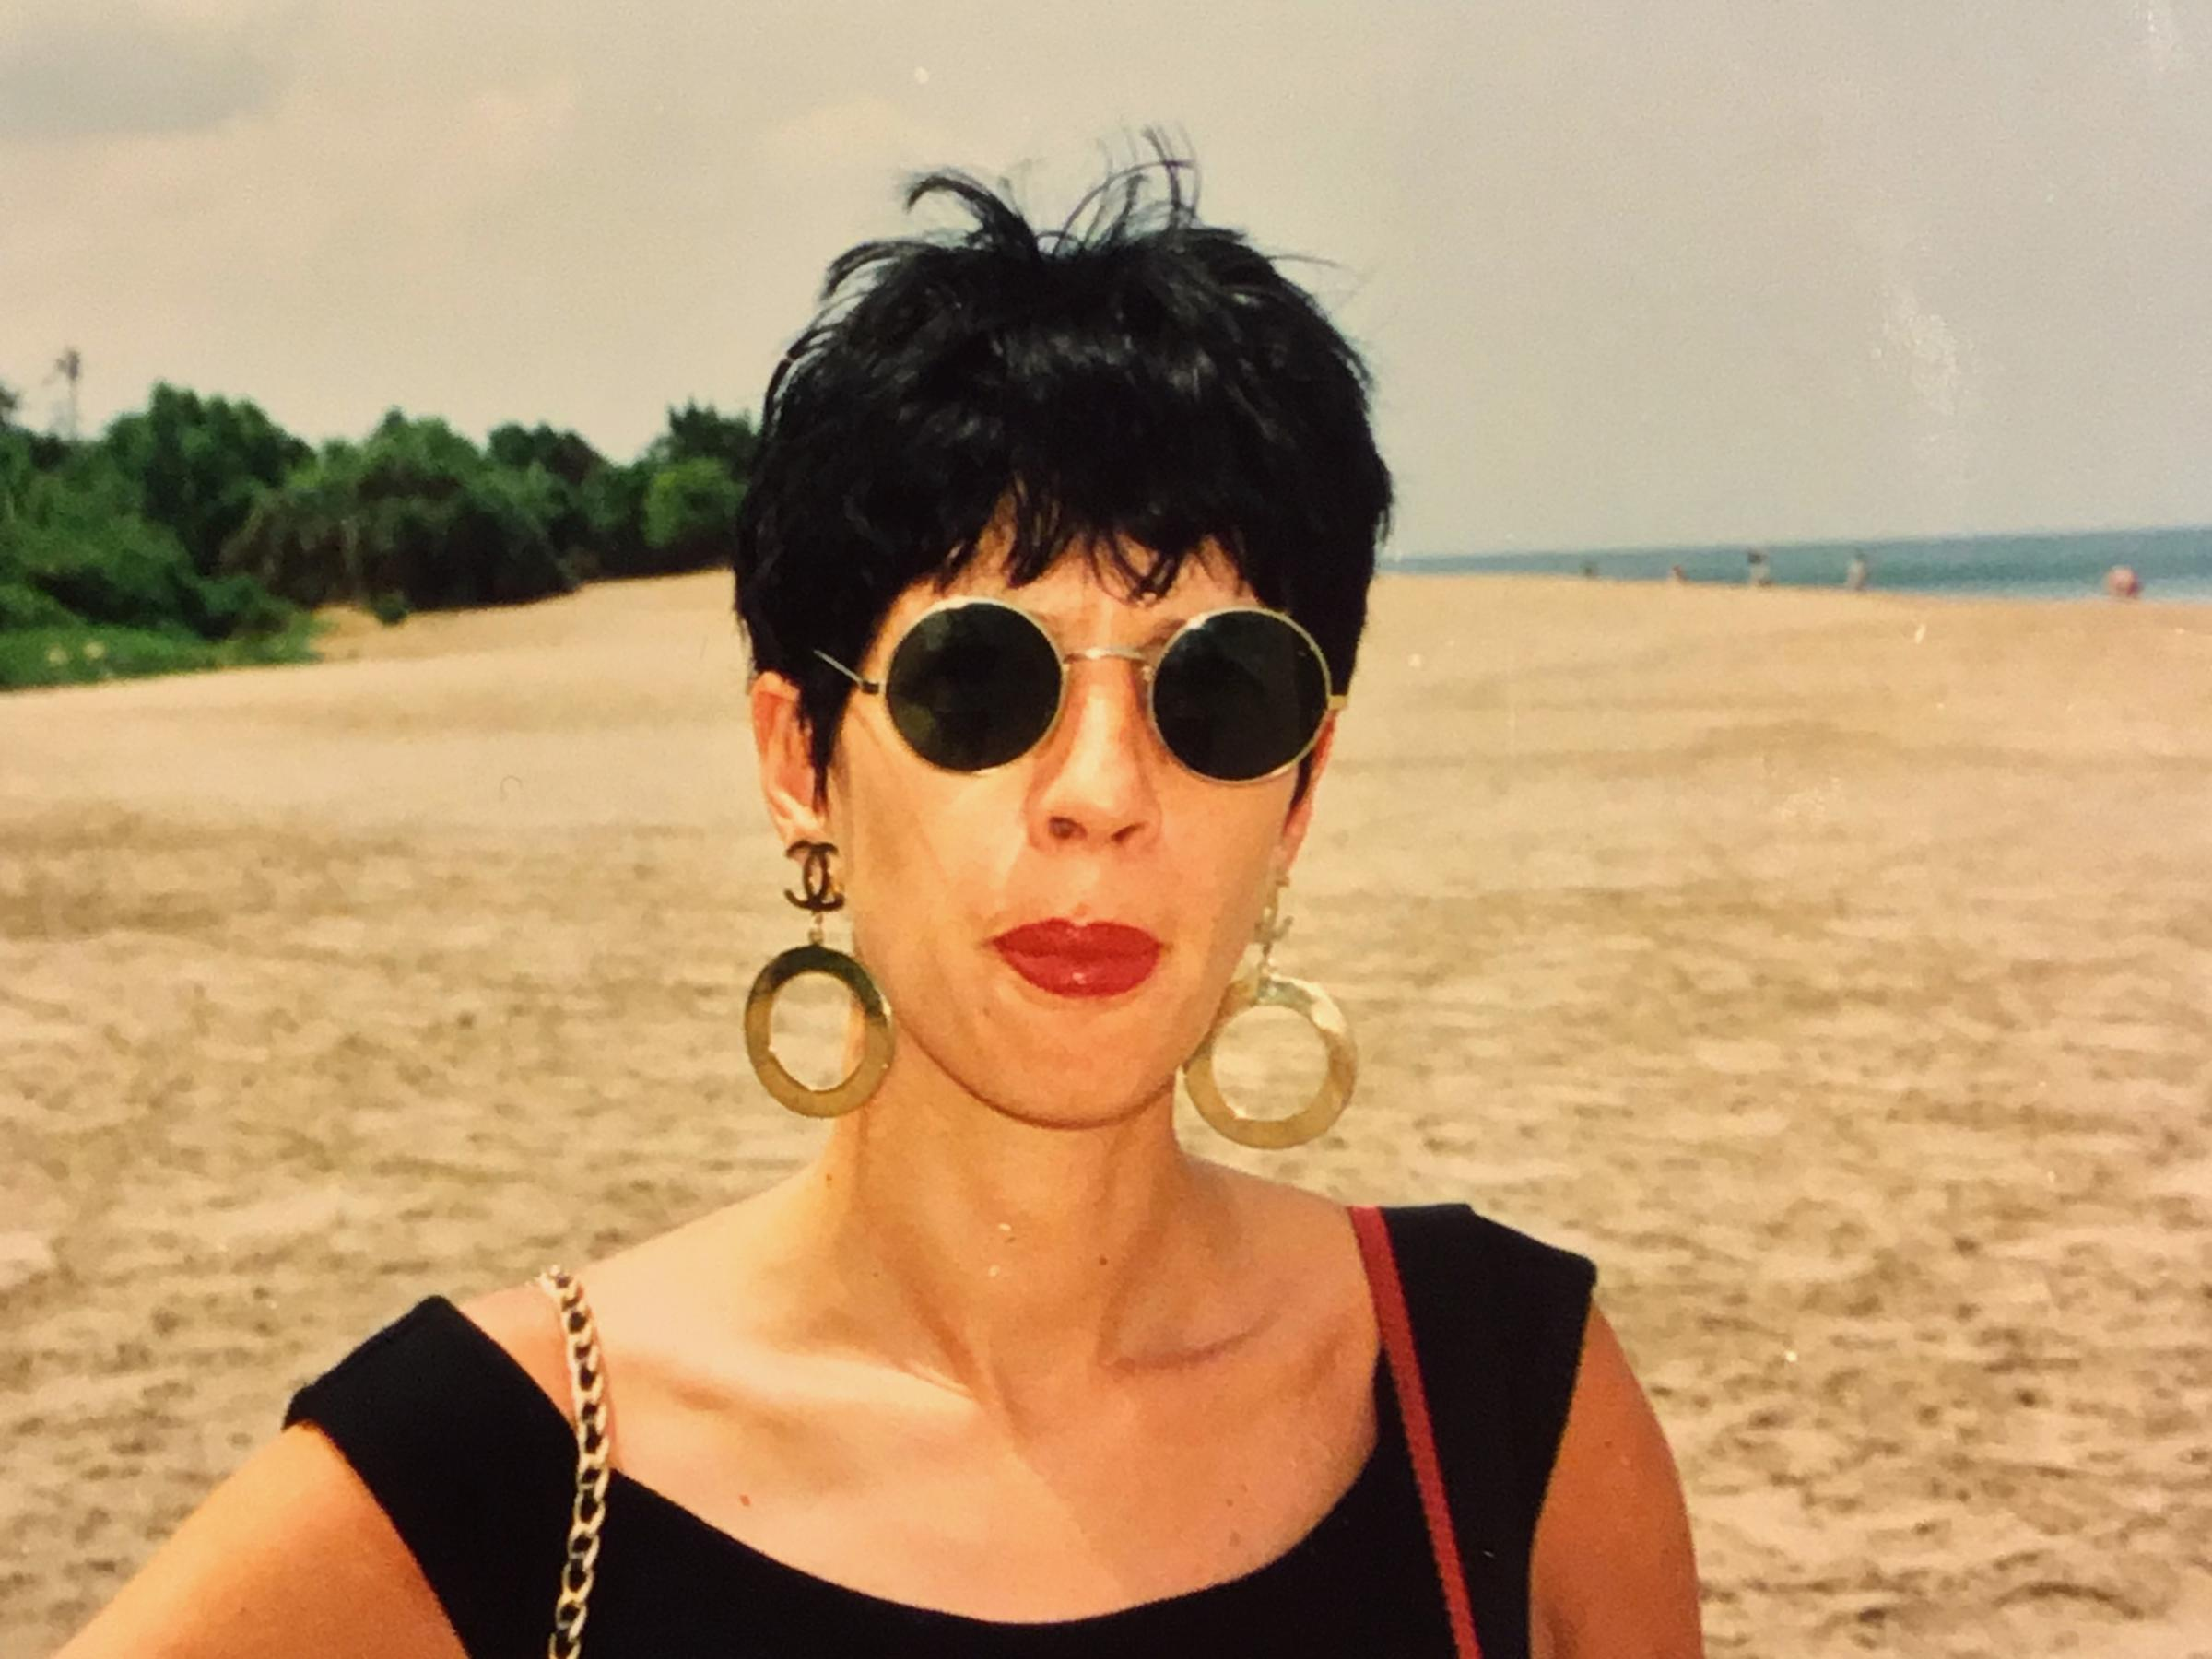 Undated family handout photo of TV presenter Magenta Devine who has died at the age of 61. PRESS ASSOCIATION Photo. Issue date: Wednesday March 6, 2019. According to her family, the broadcaster - who was known for her trademark black sunglasses, stylish